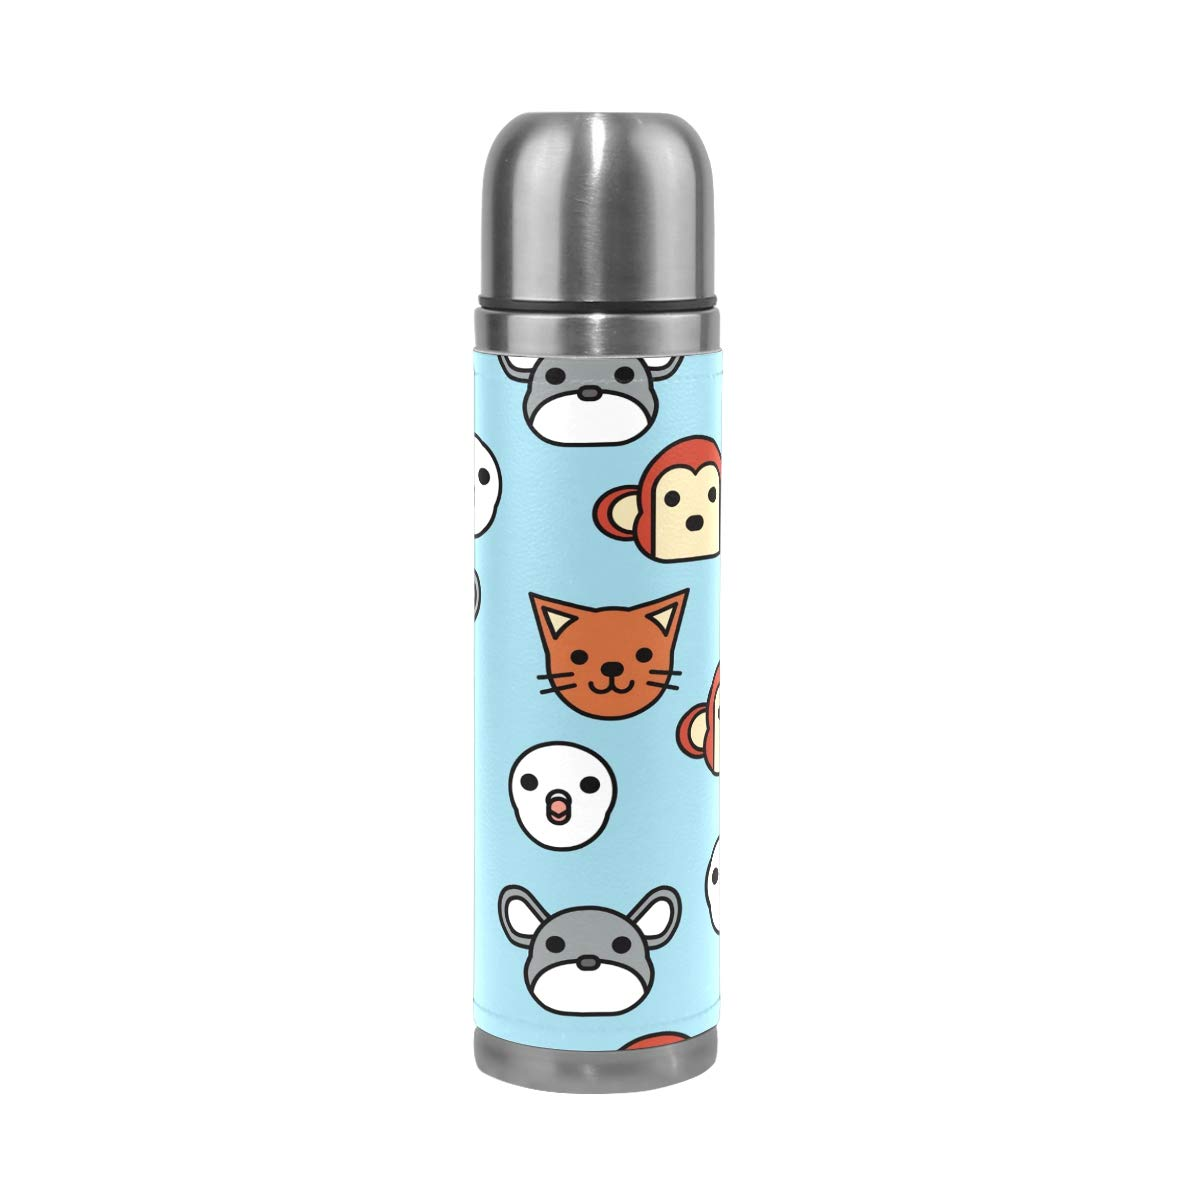 Jojogood Pattern of Animals Stainless Steel Water Bottle Leak-Proof Vacuum Insulated Double Wall PU Leather Travel Thermos Mug for Hot and Cold Drinks 17 oz